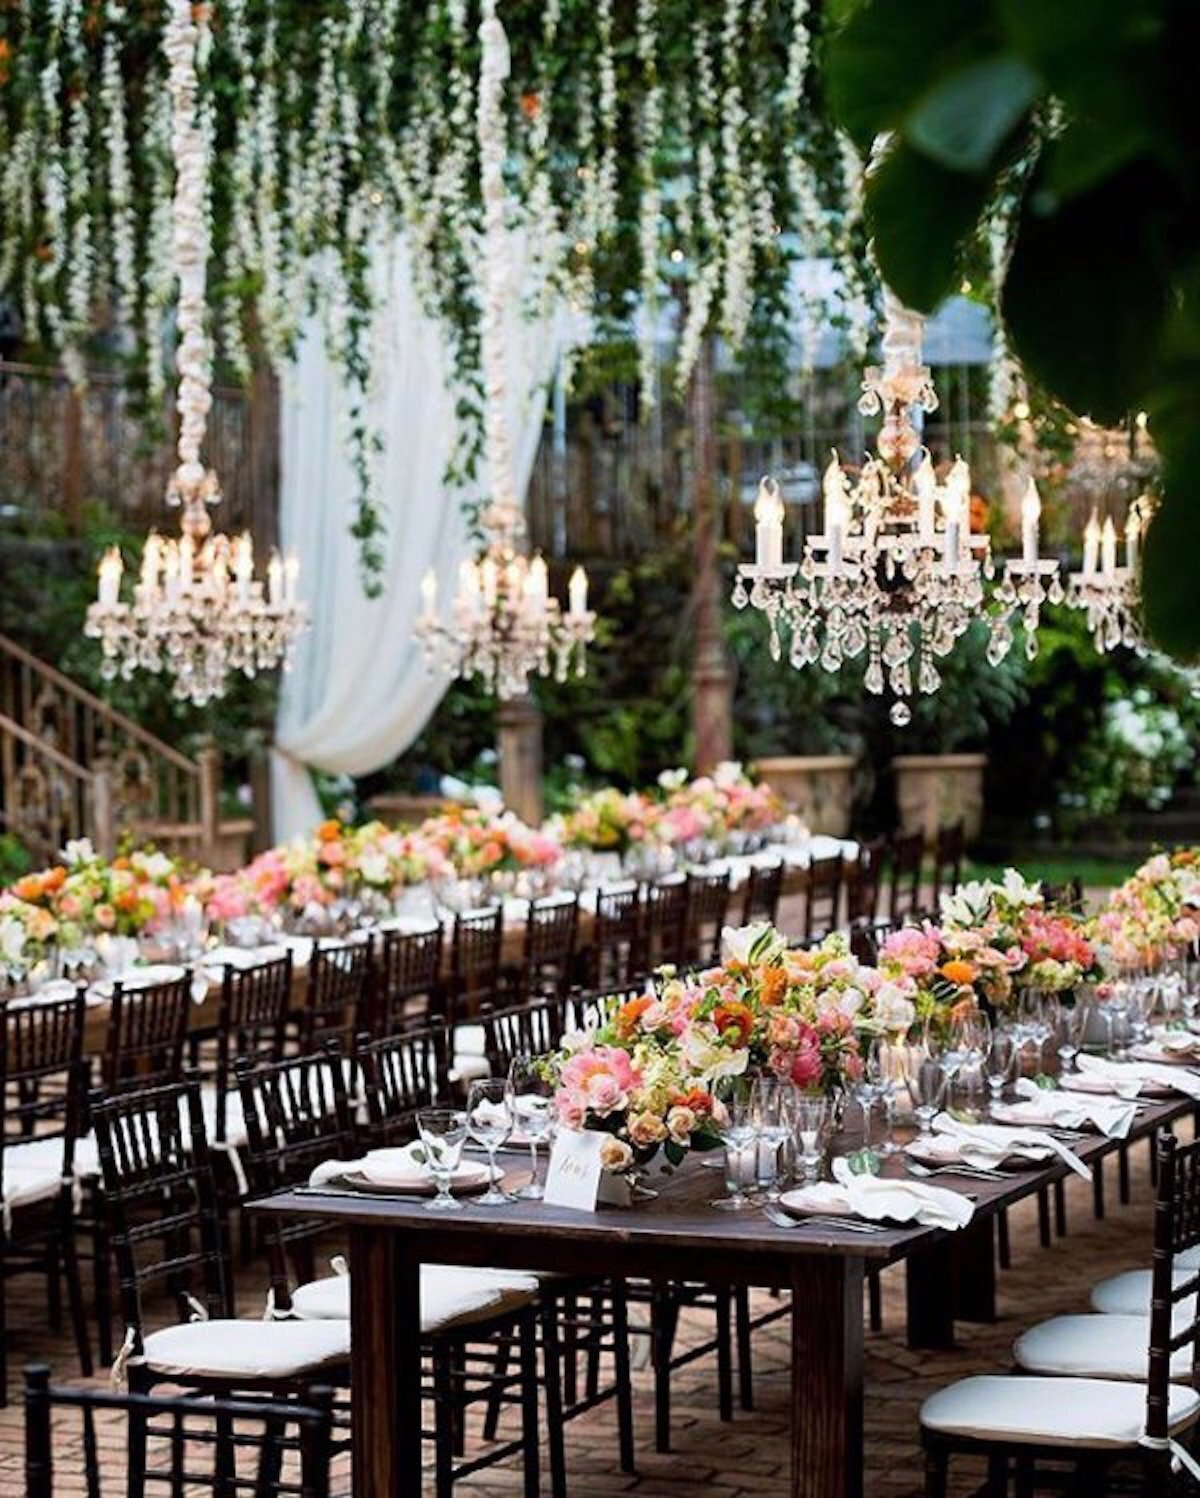 Hanging+Chandeliers+with+Flowers